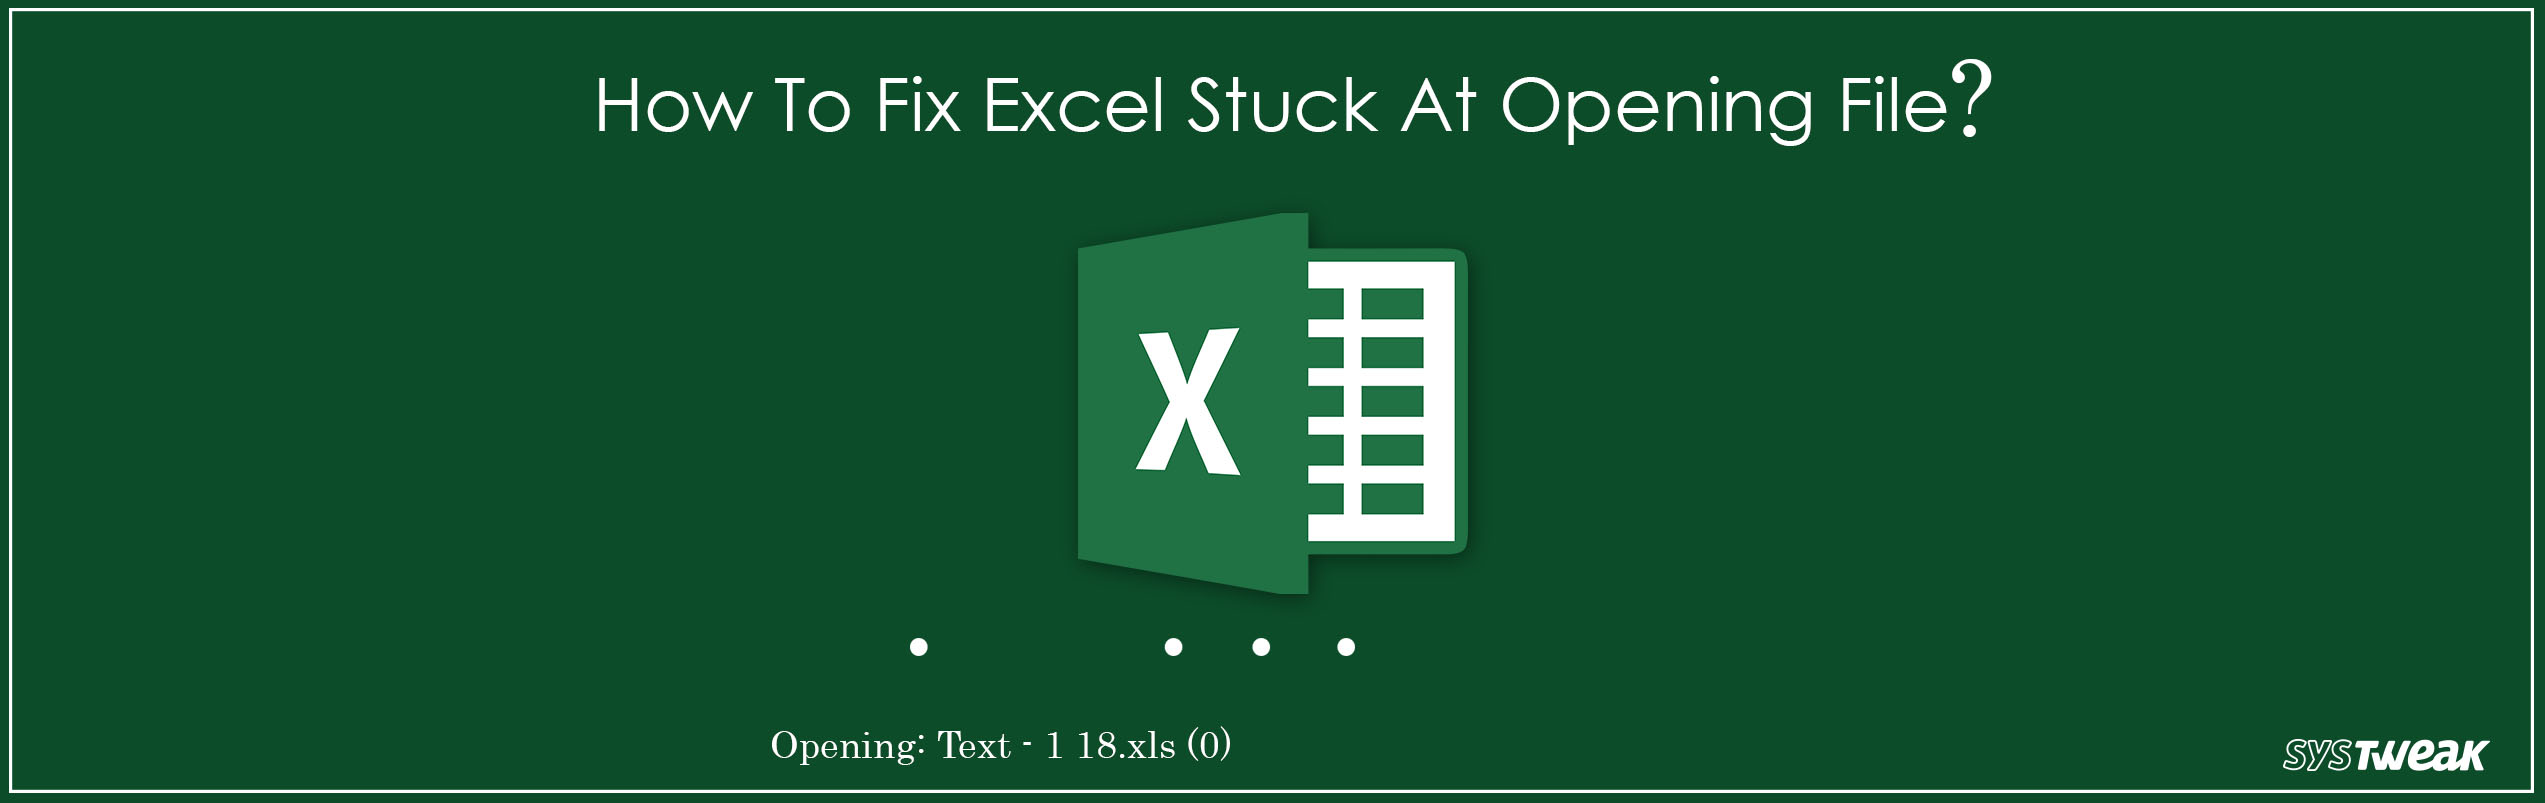 Excel Stuck At Opening File 0% Fix